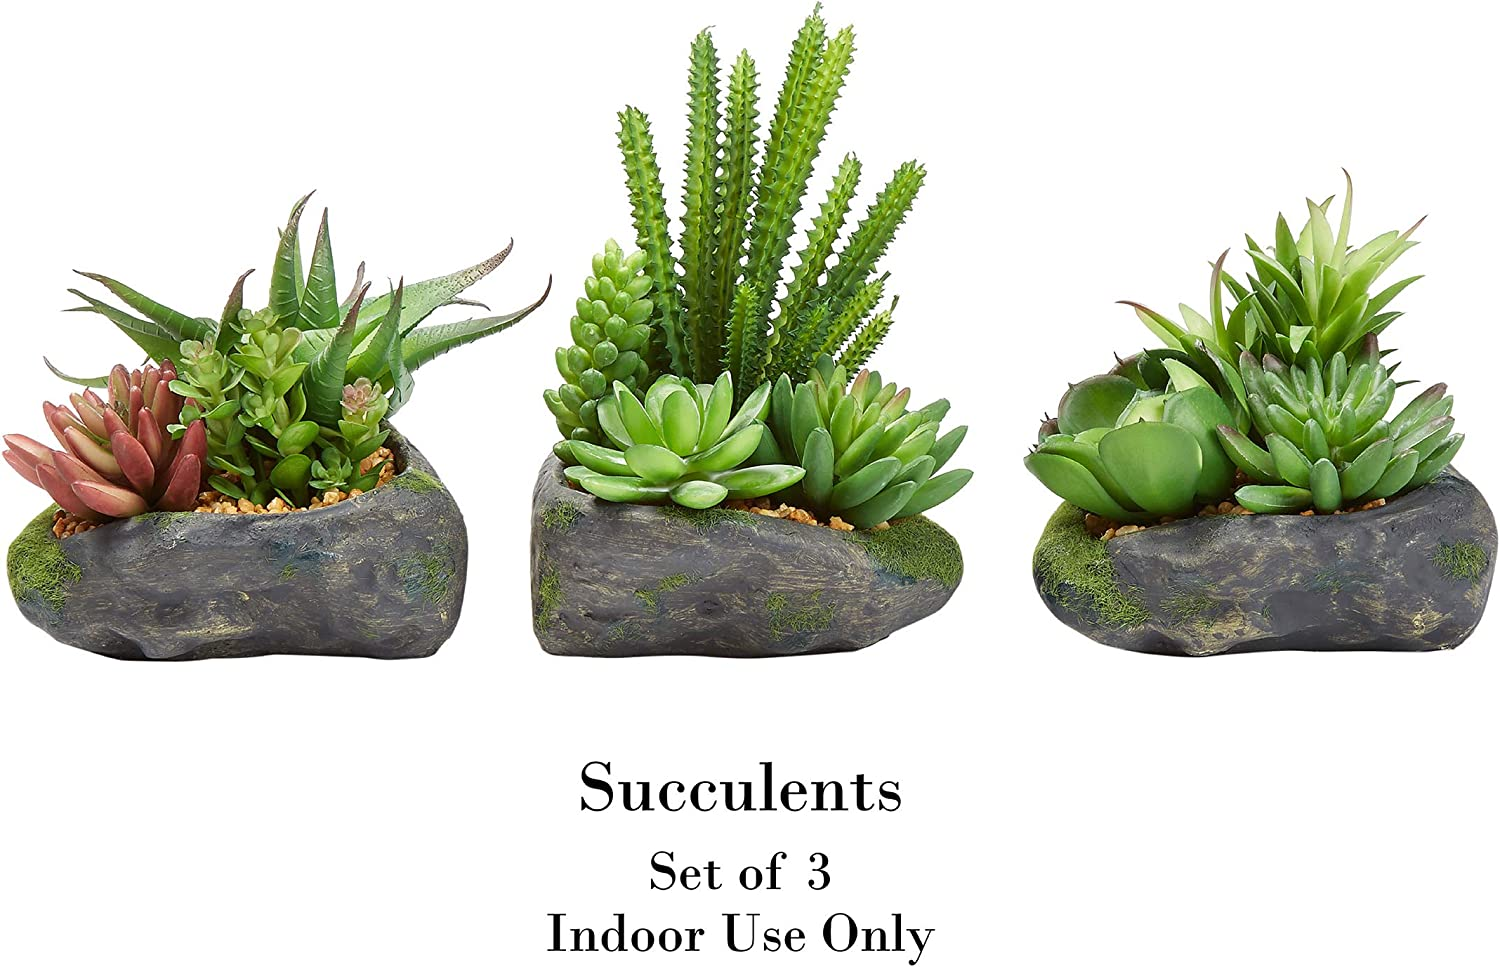 Pure Garden Artificial Succulent Plant Arrangements In Faux Stone Pots 3 Piece Set In Assorted Sizes Lifelike Greenery Home Decoration Home Kitchen